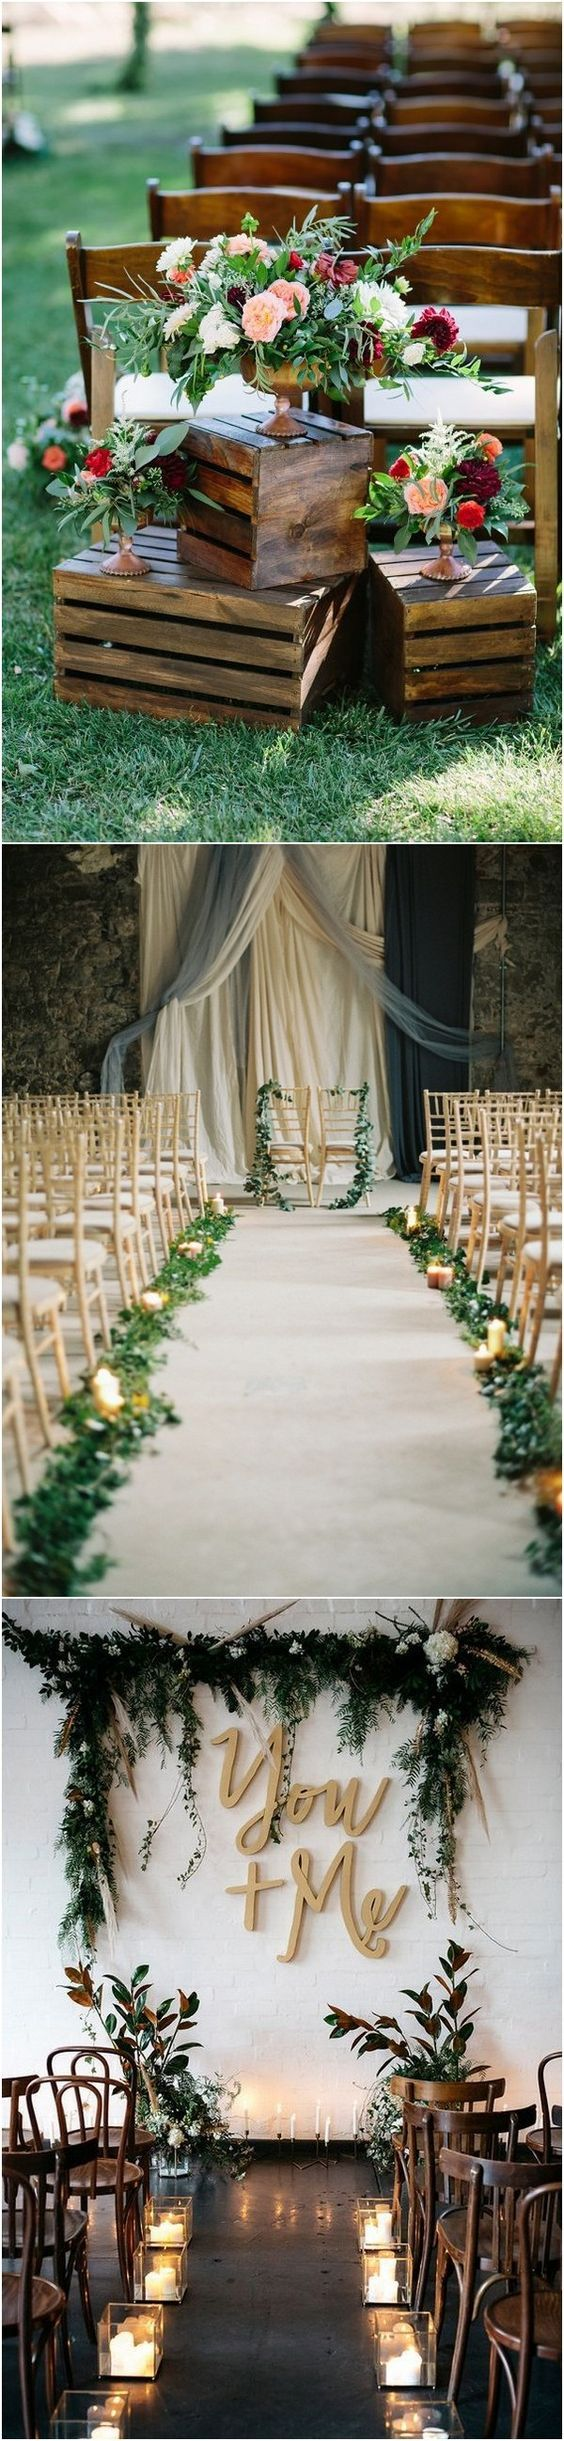 Decoration images for wedding   Breathtaking Wedding Aisle Decoration Ideas to Steal  Page  of